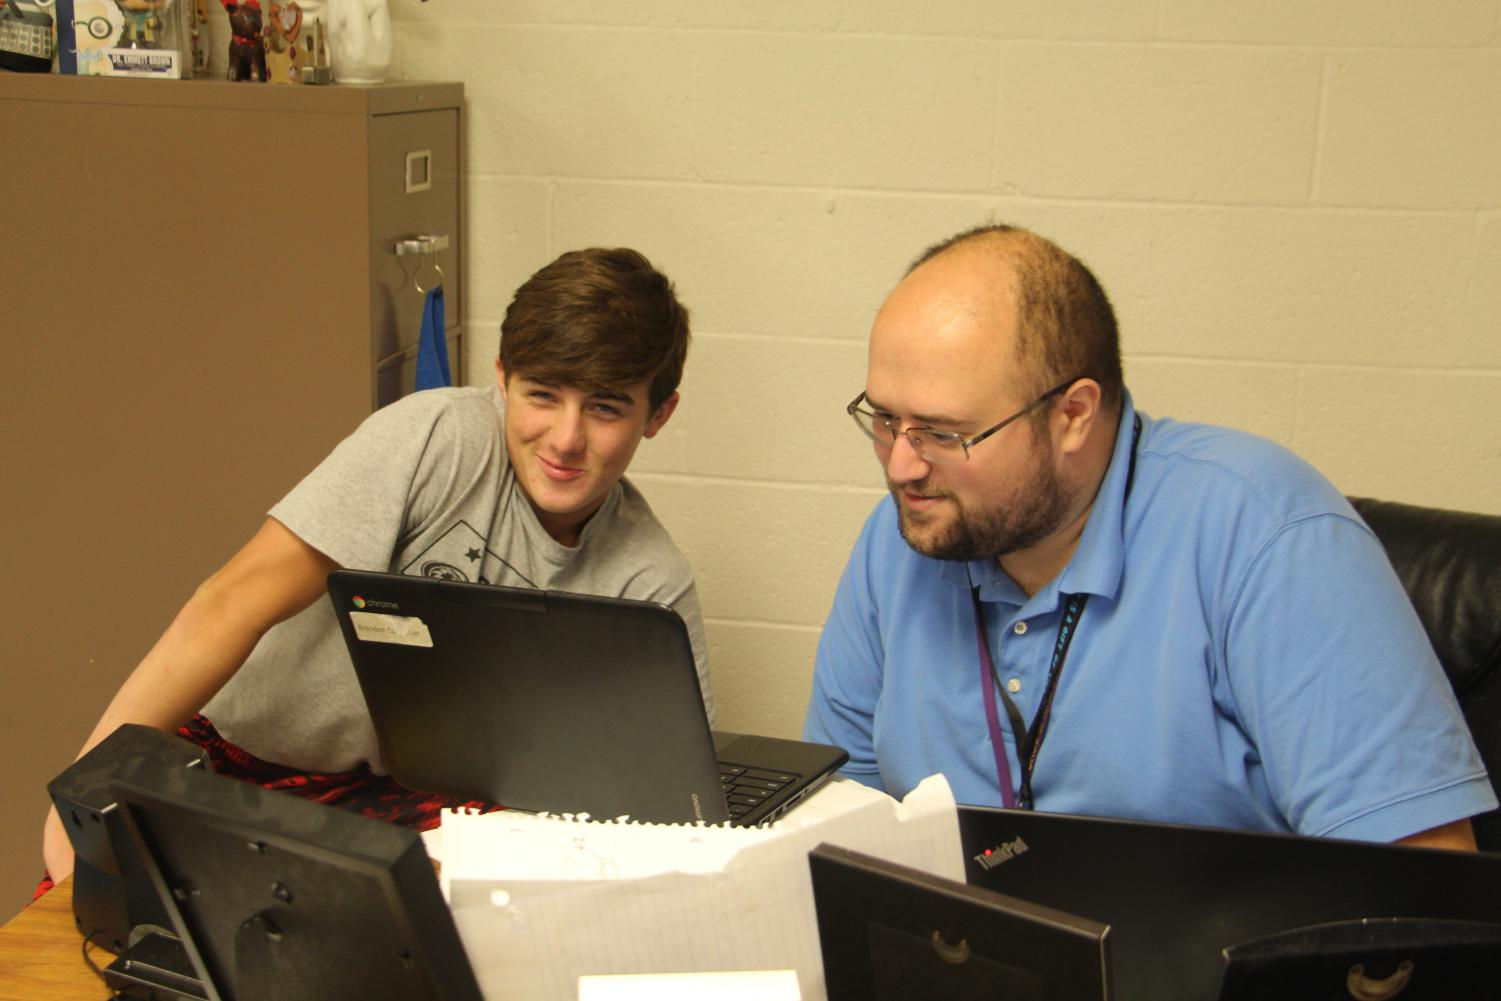 Mr. Enchayan helps freshman Brandon Carpenter on a problem on his homework assignment.